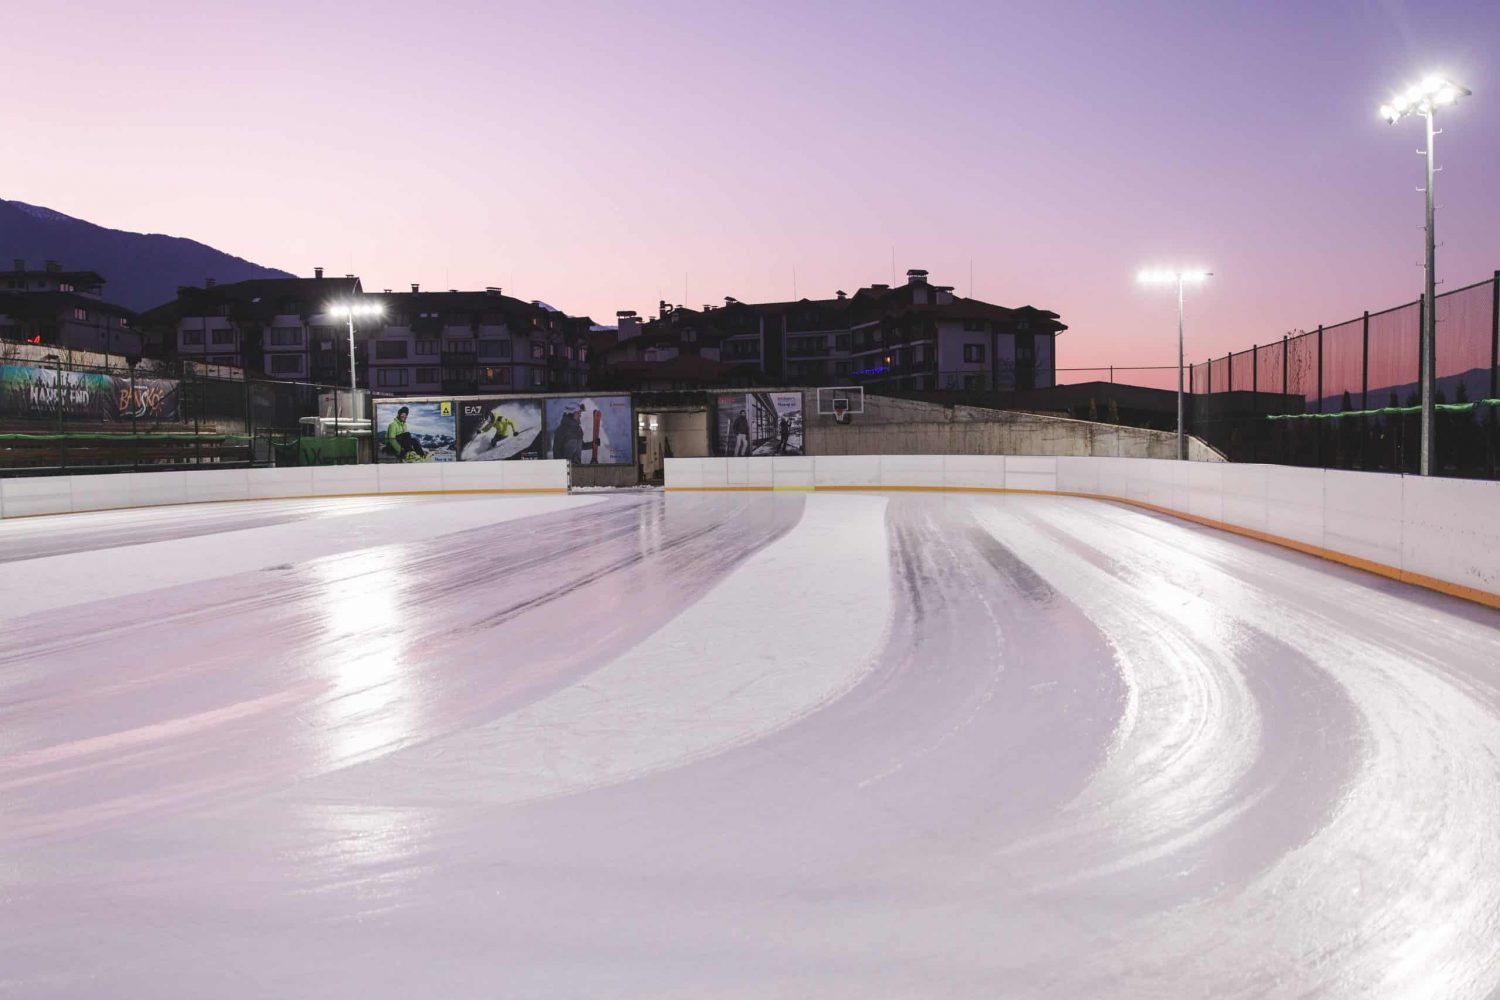 The ice skating rink in Bansko, Bulgaria at sunset.